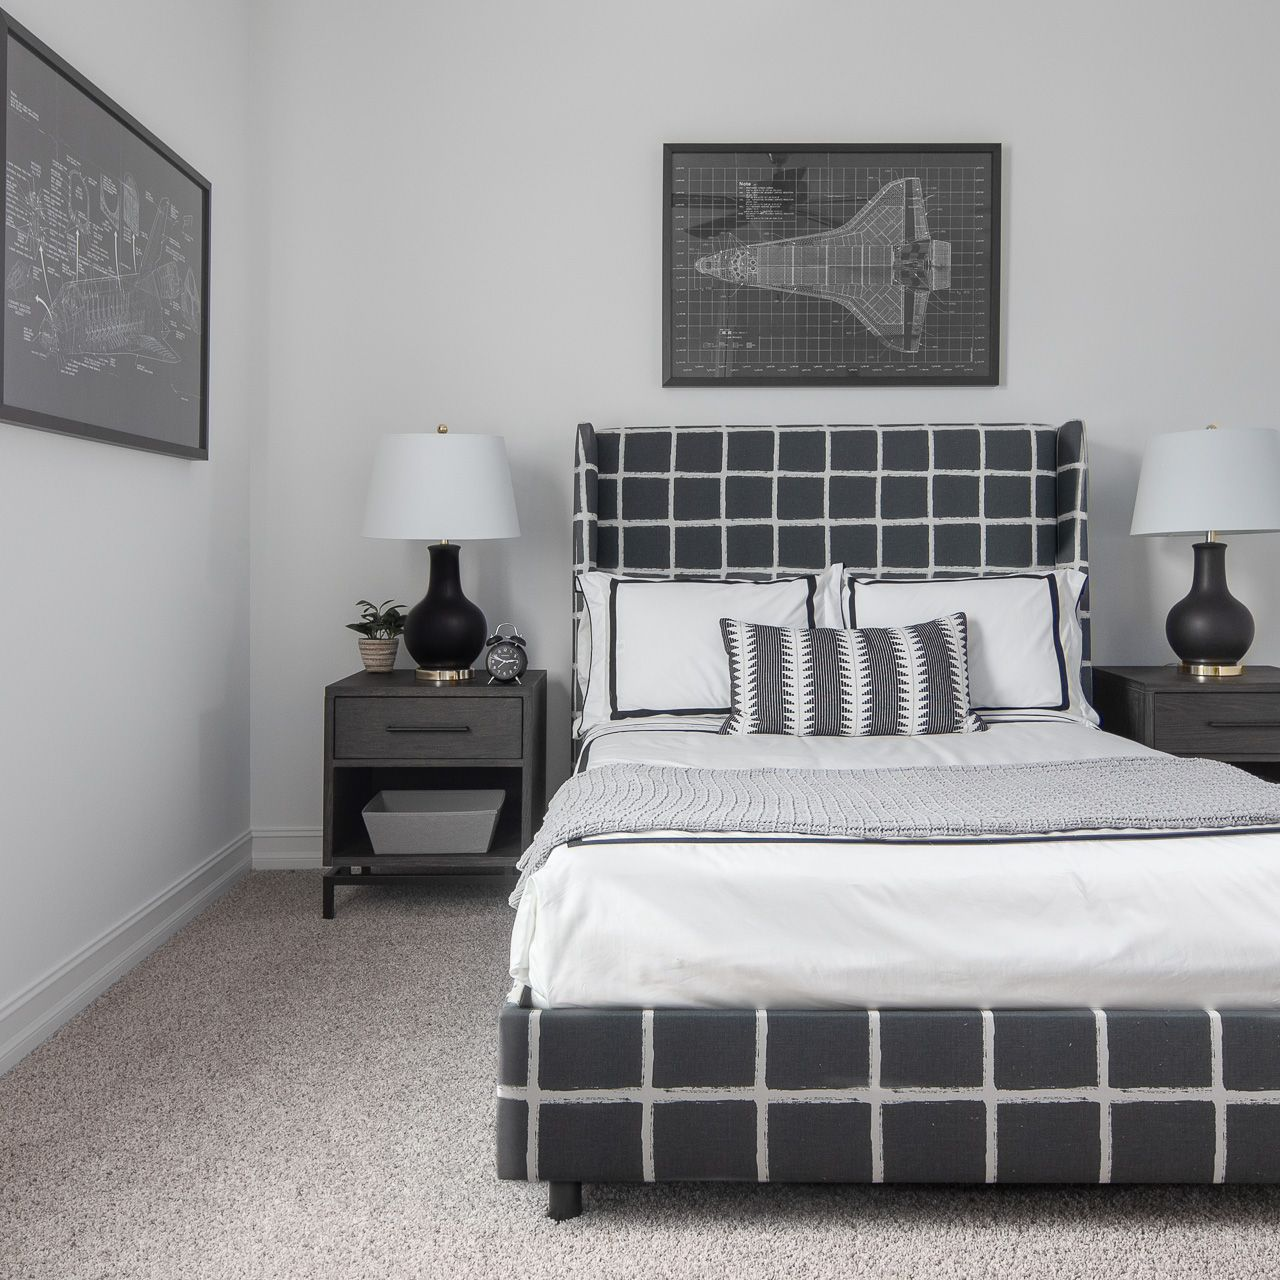 Bedroom featured in the Acacia By Viera Builders  in Melbourne, FL